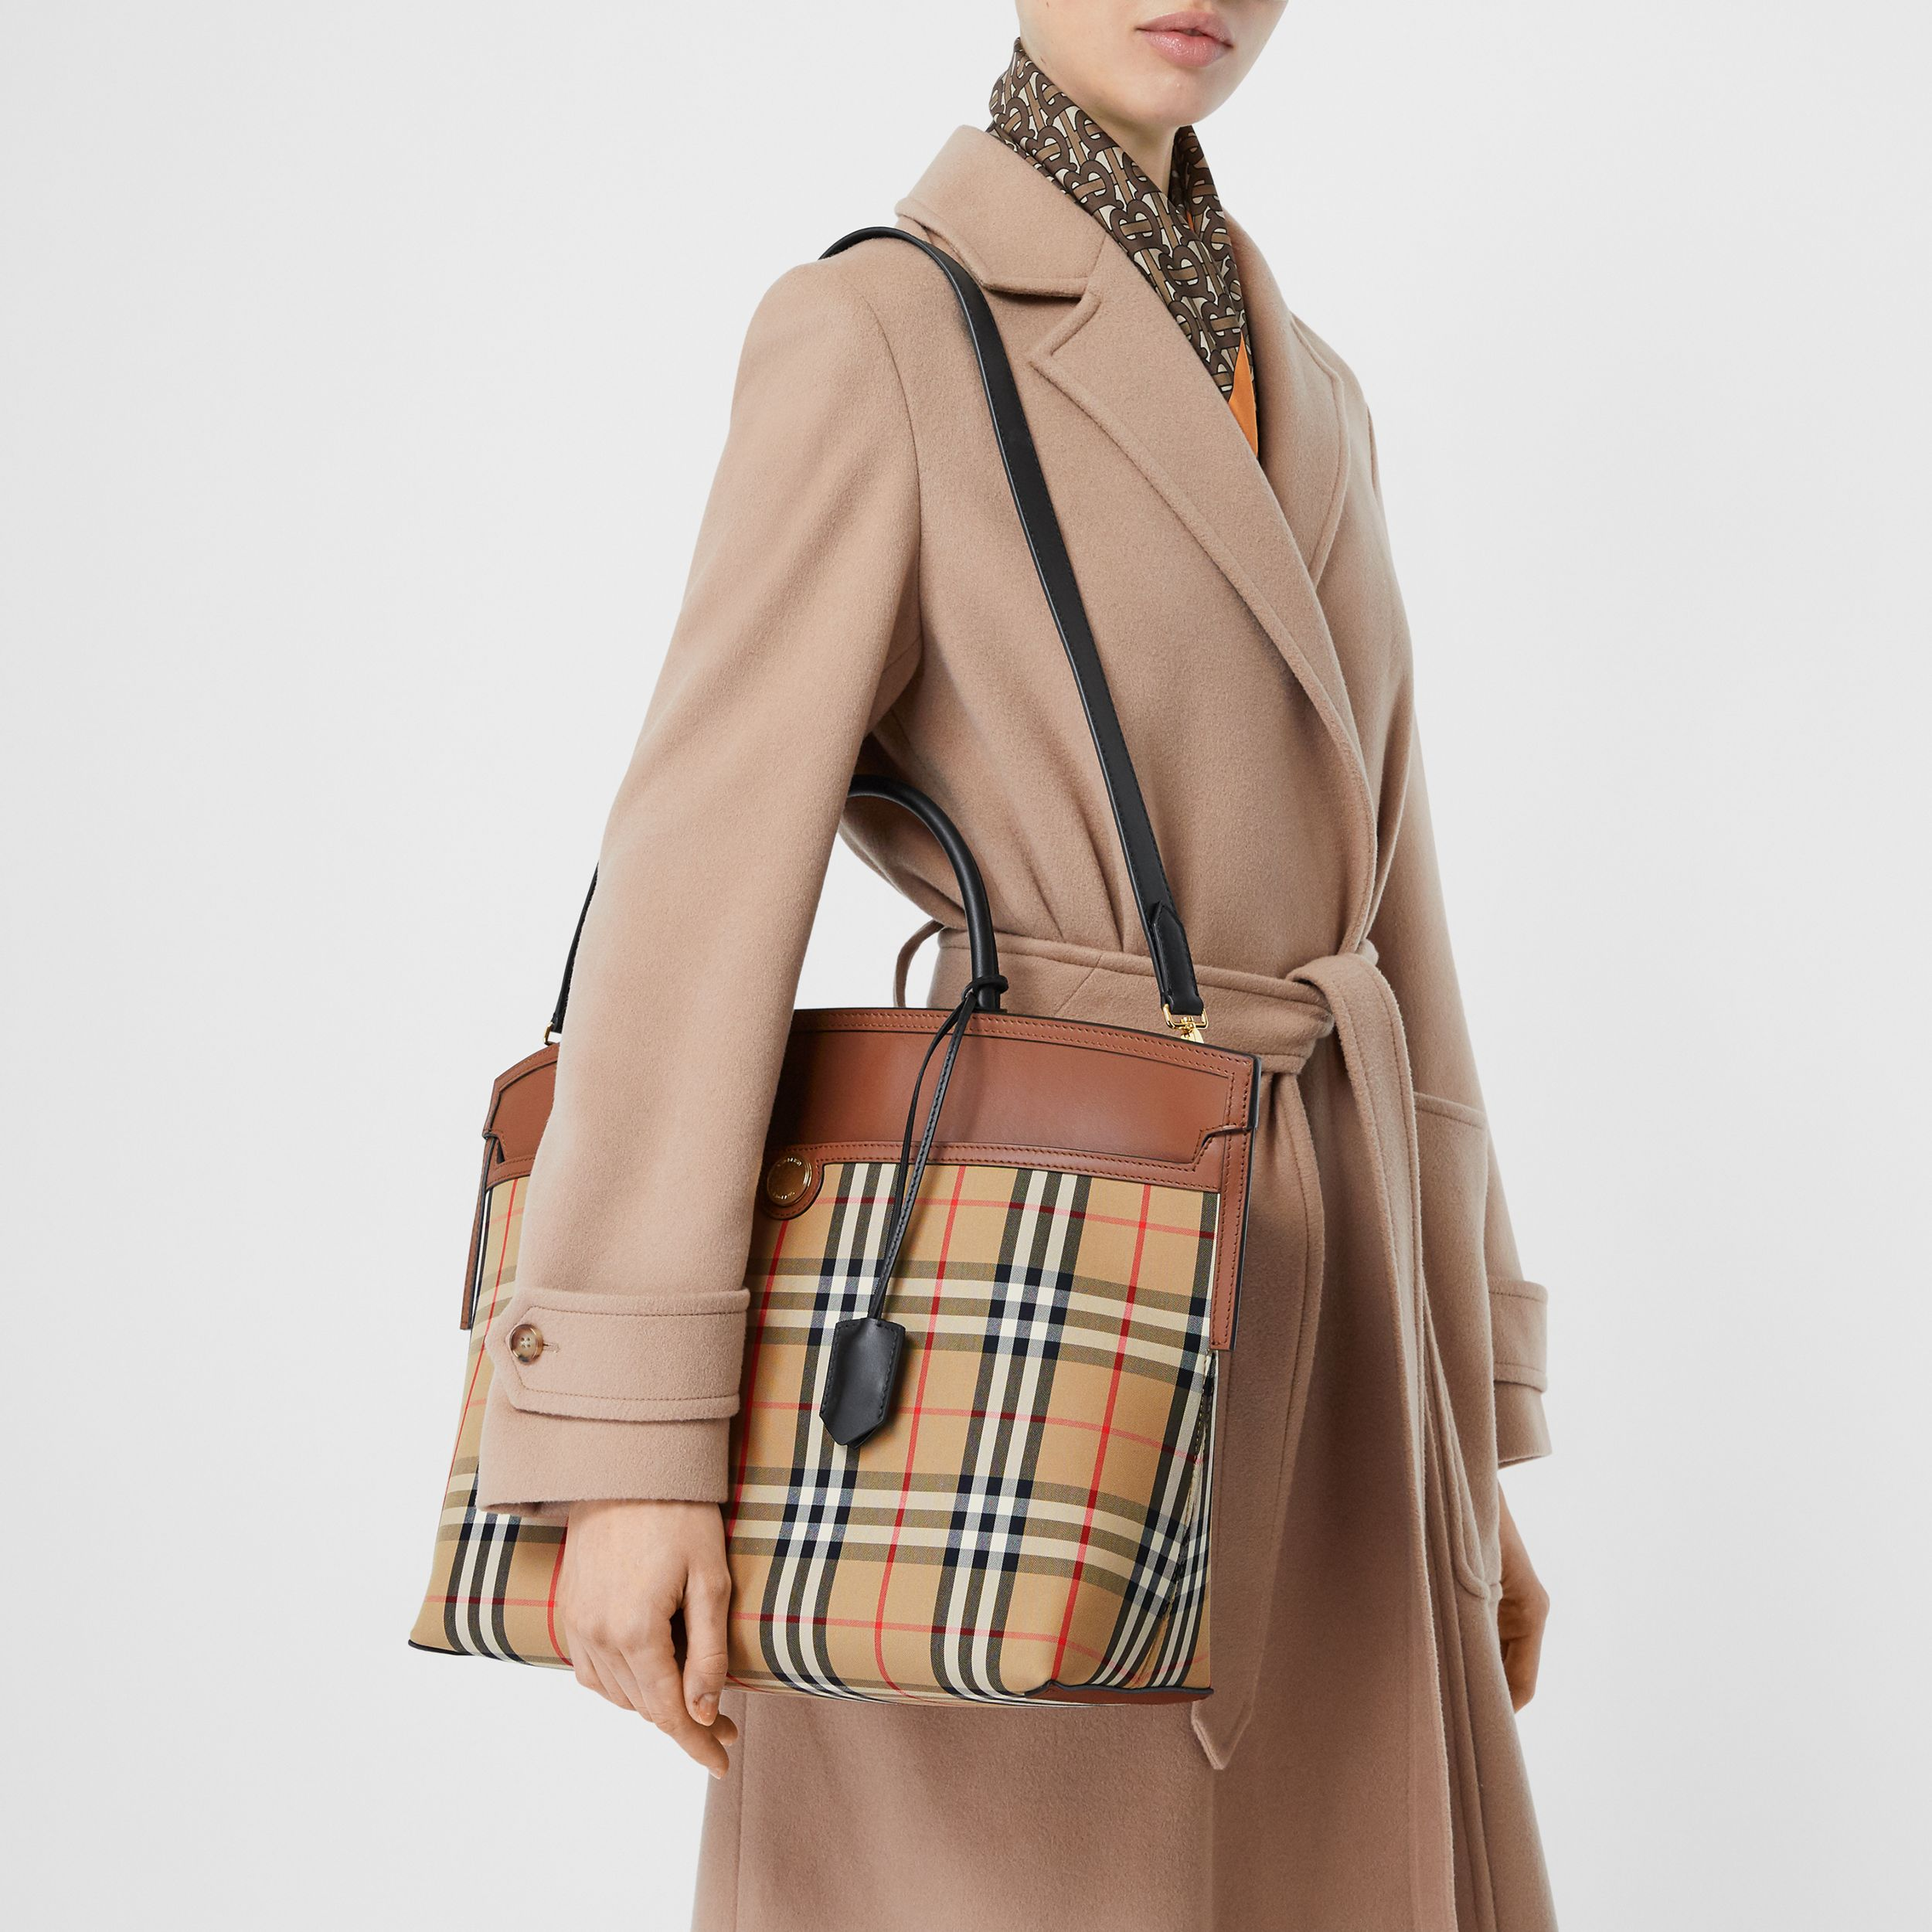 Borsa Society con motivo Vintage check e finiture in pelle (Beige Archivio/marroncino) - Donna | Burberry - 3